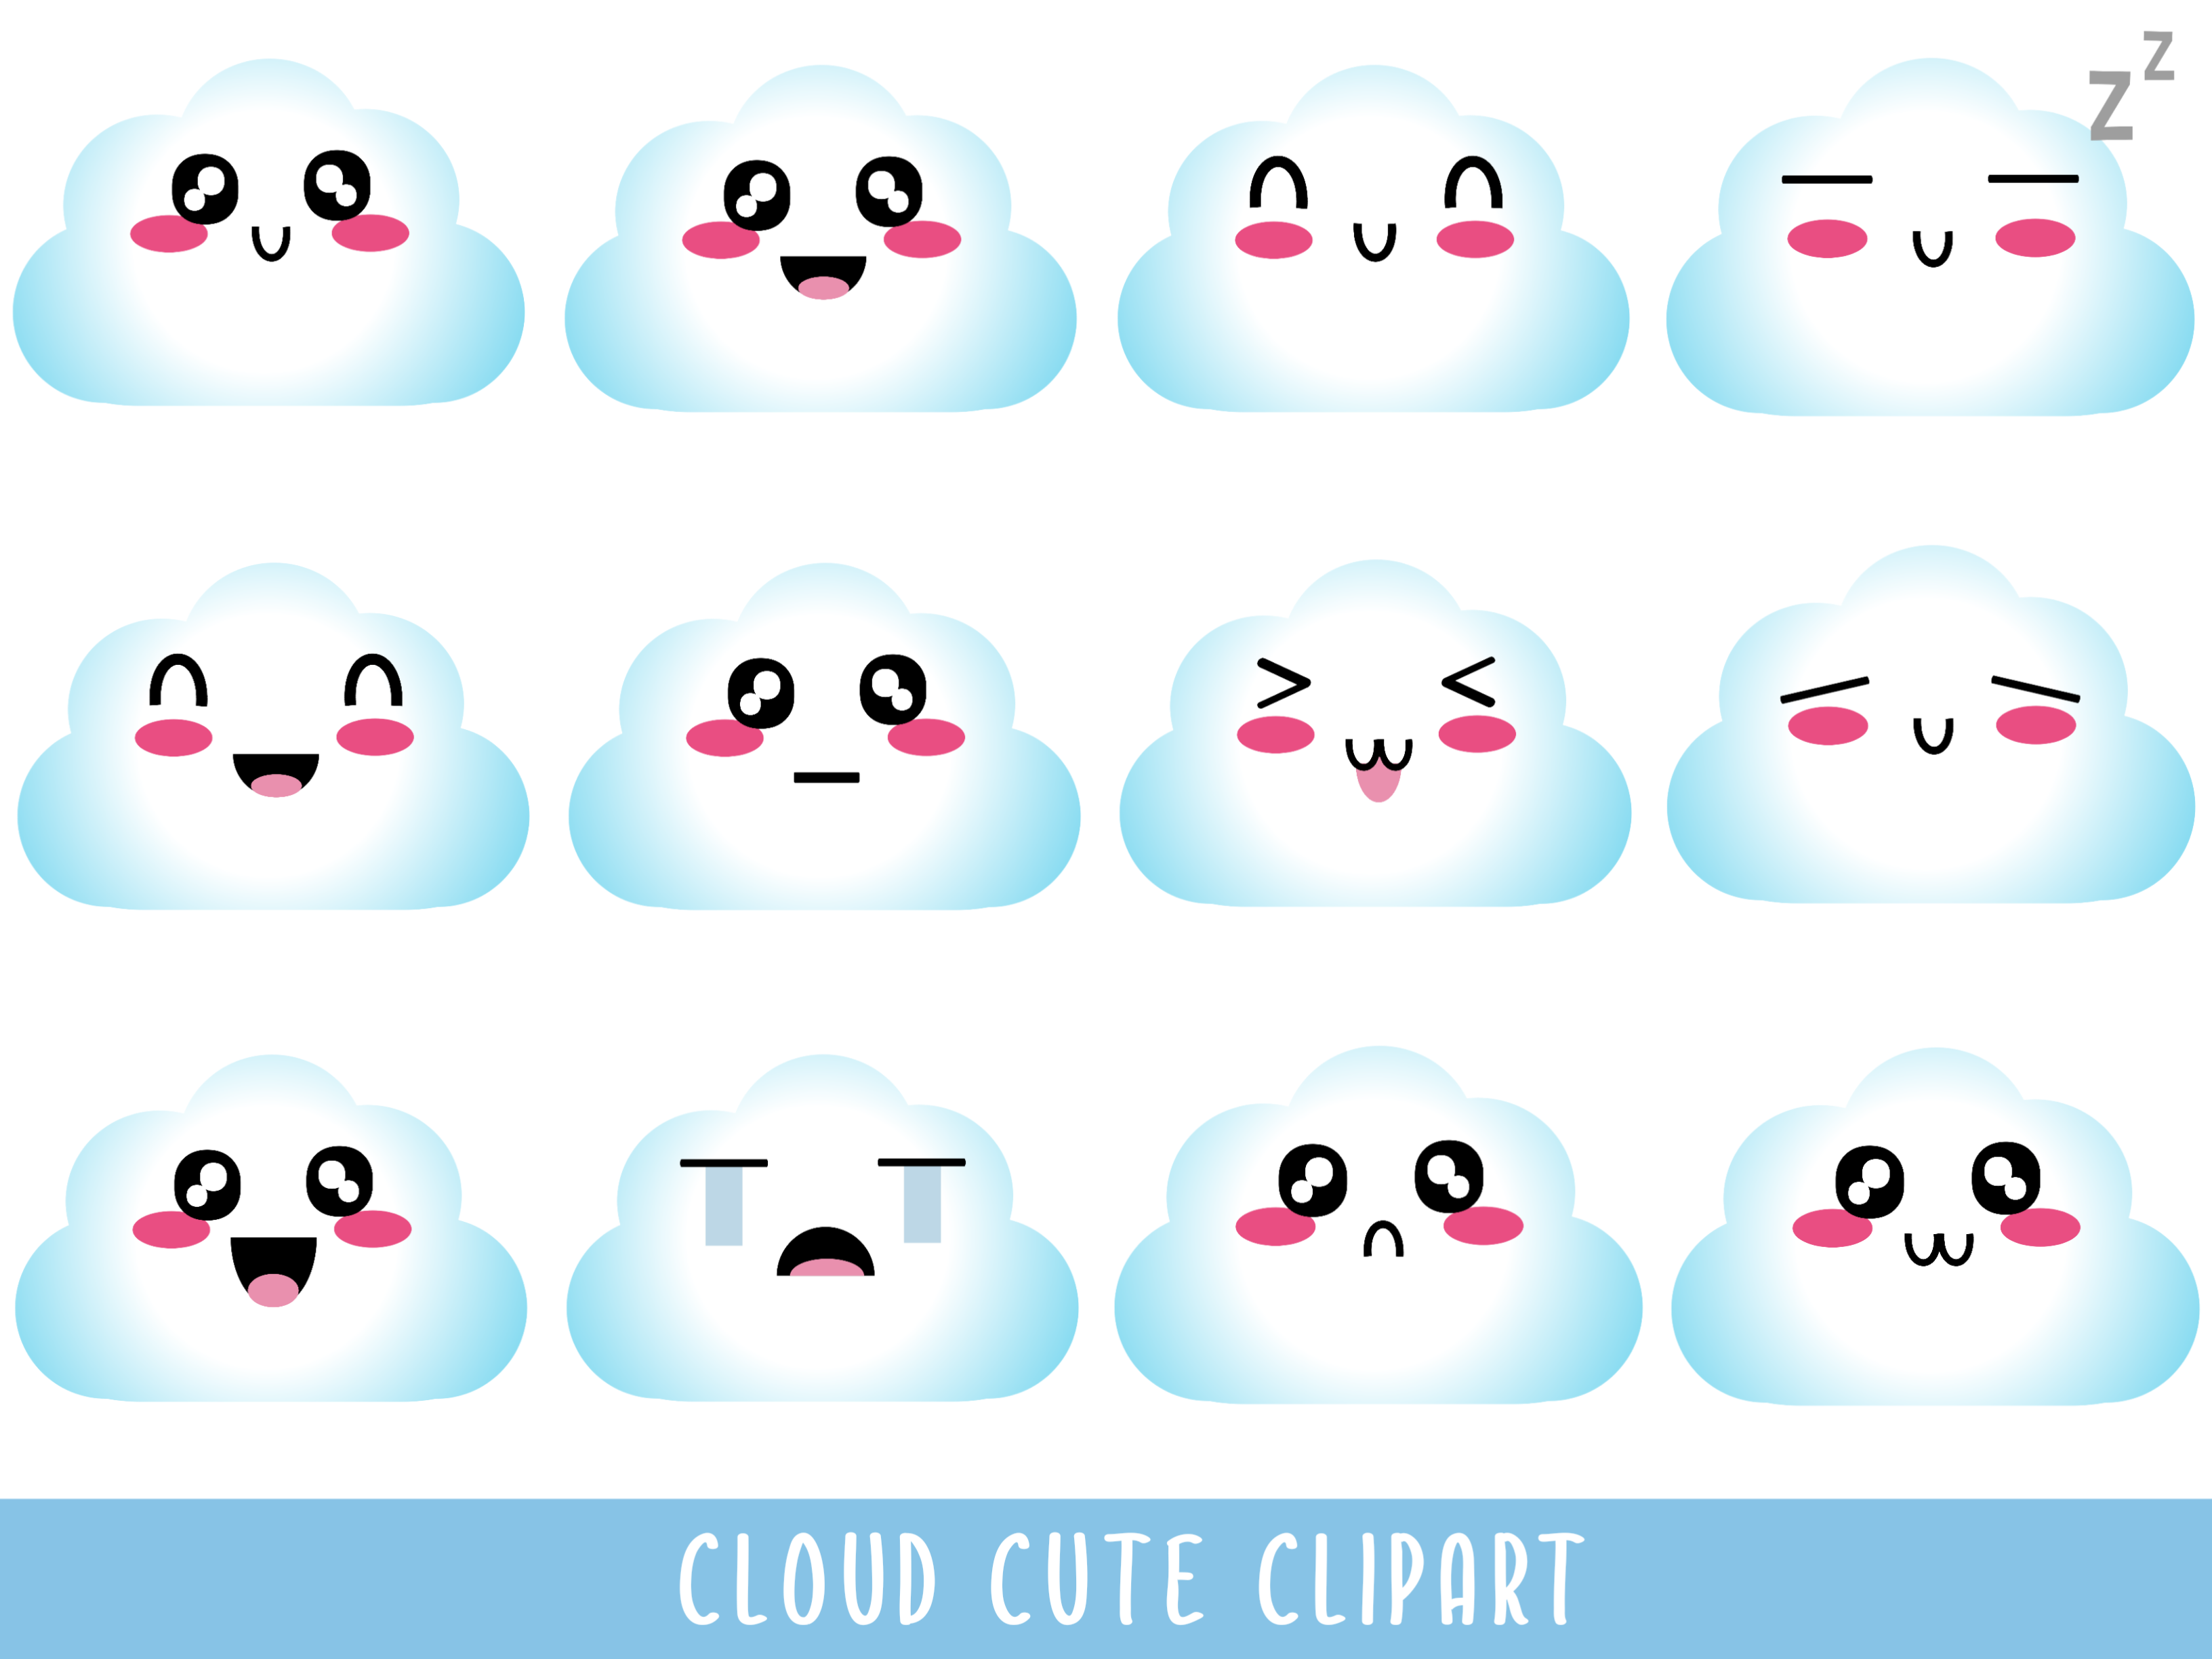 Download Free Cloud Cute Clipart Graphic By Happy Kiddos Creative Fabrica for Cricut Explore, Silhouette and other cutting machines.